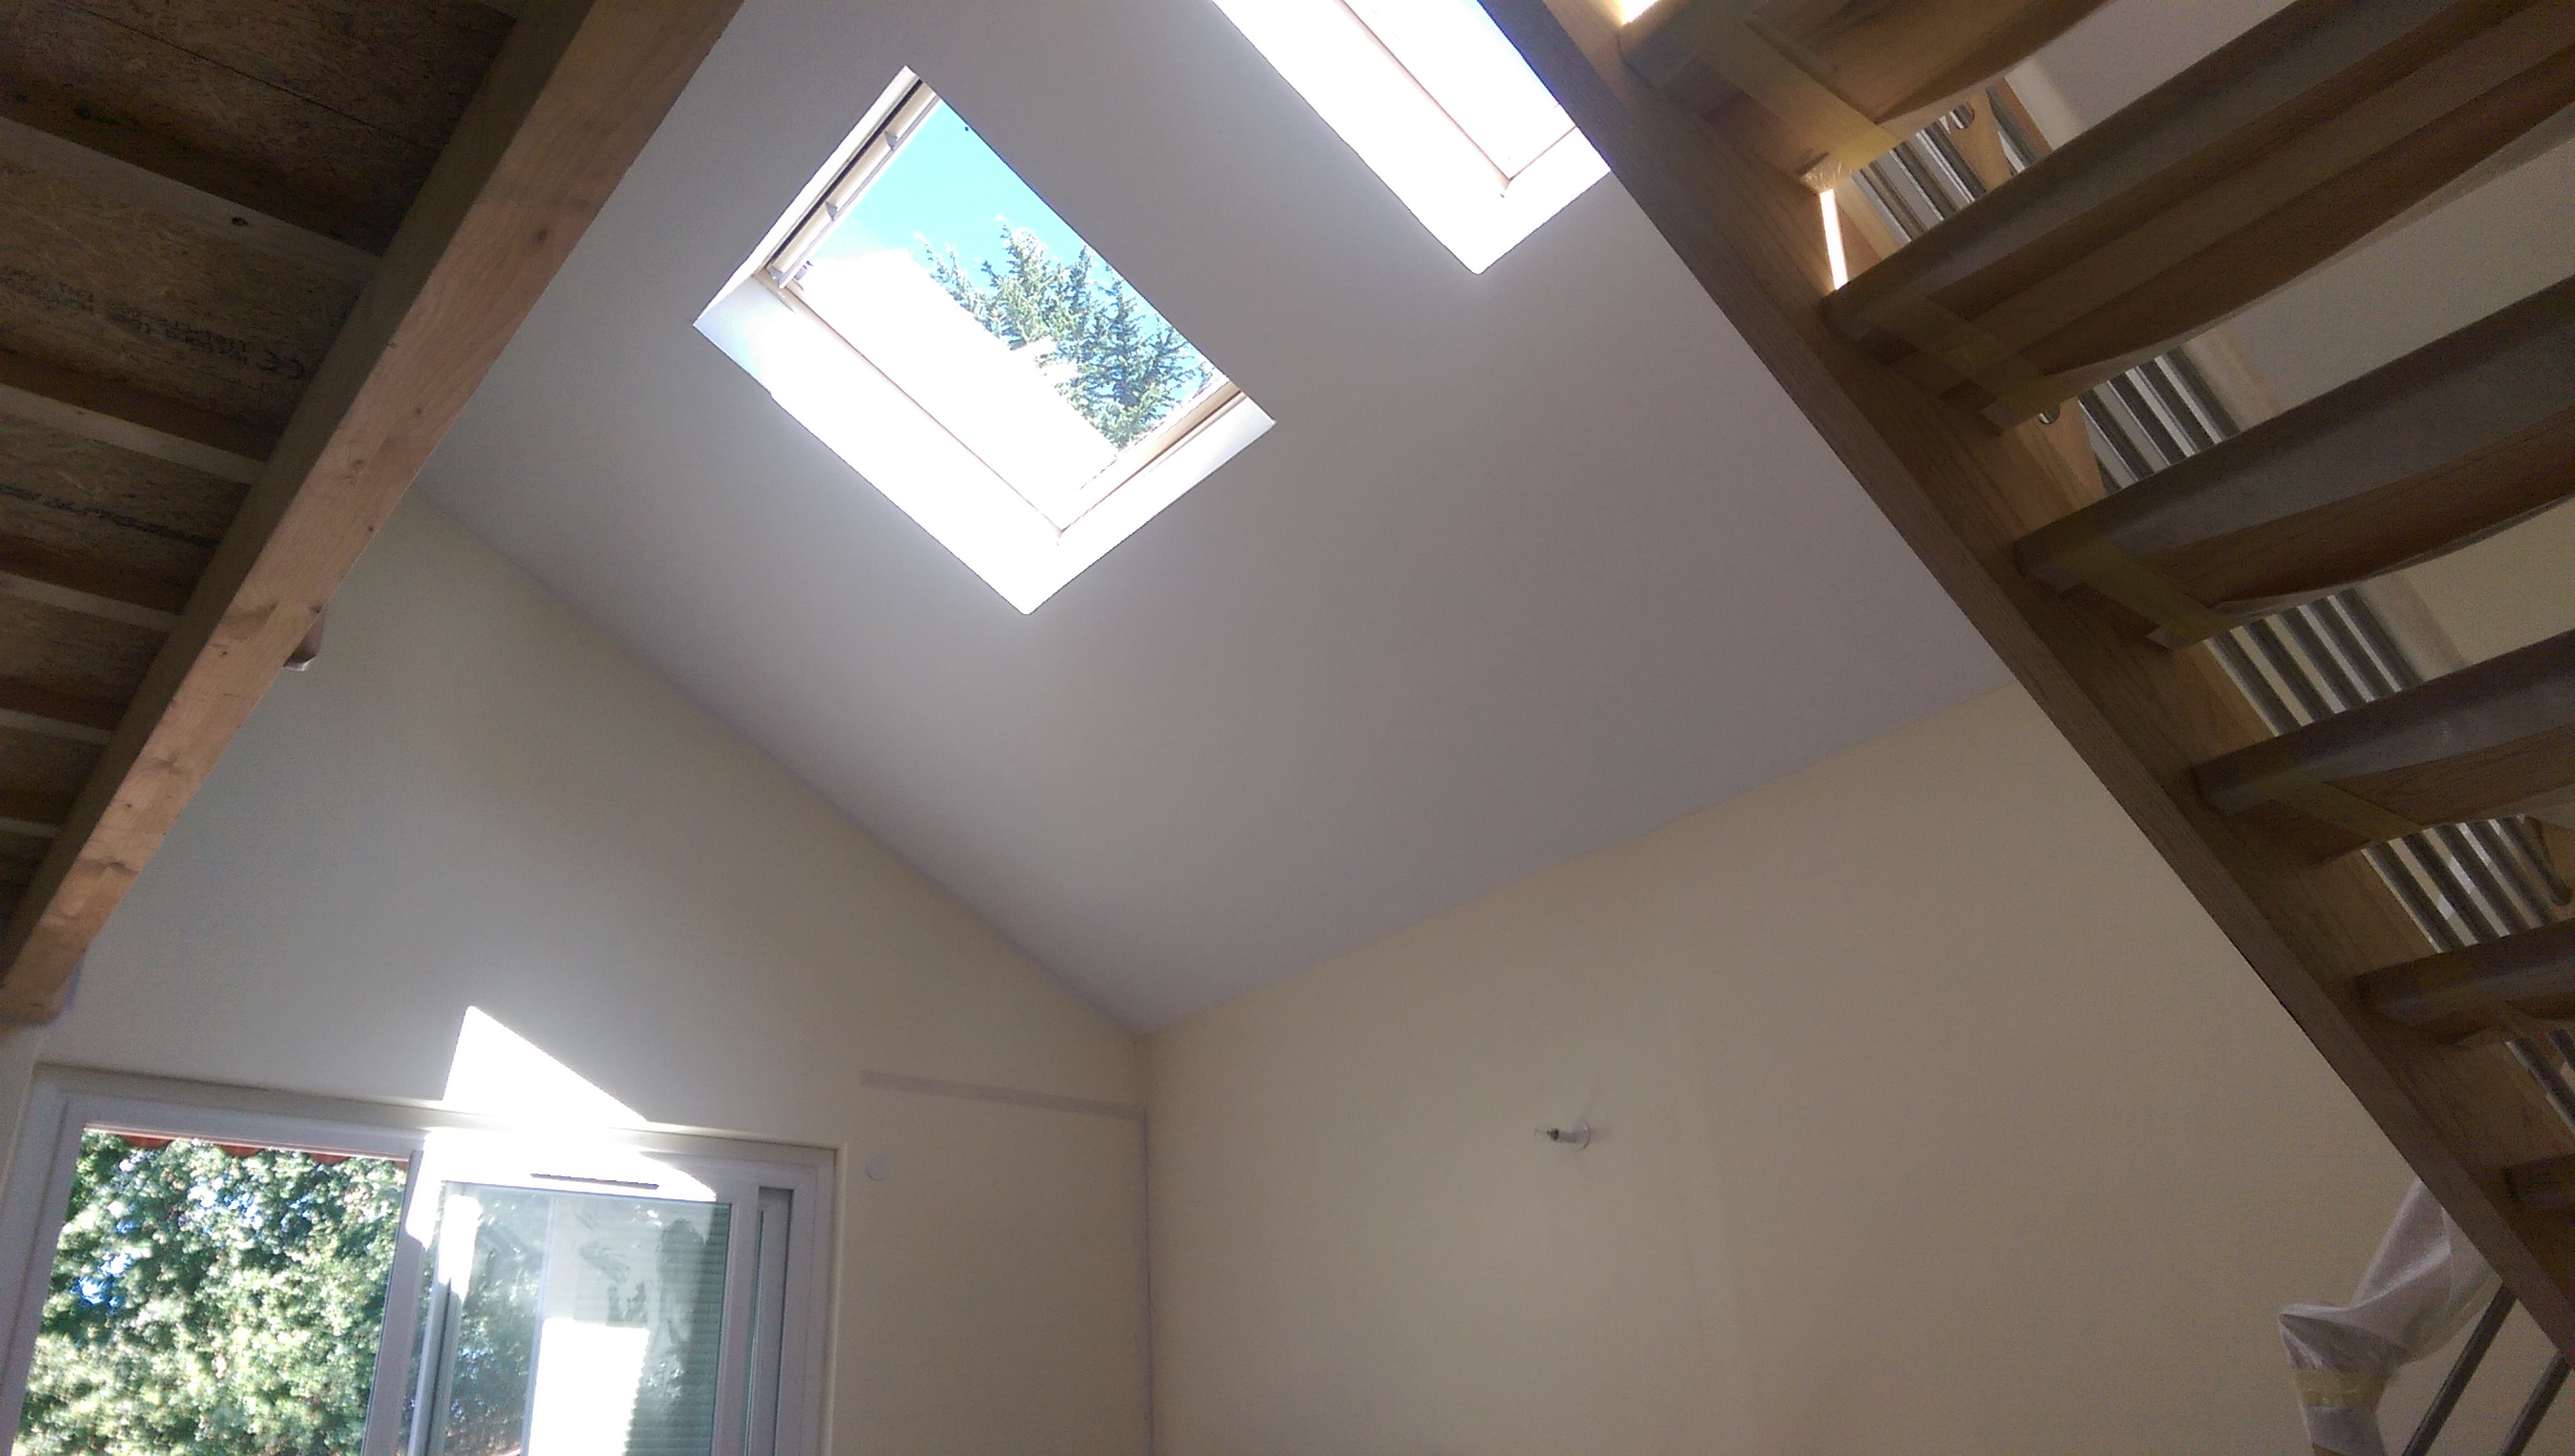 amenagement de comble avec velux